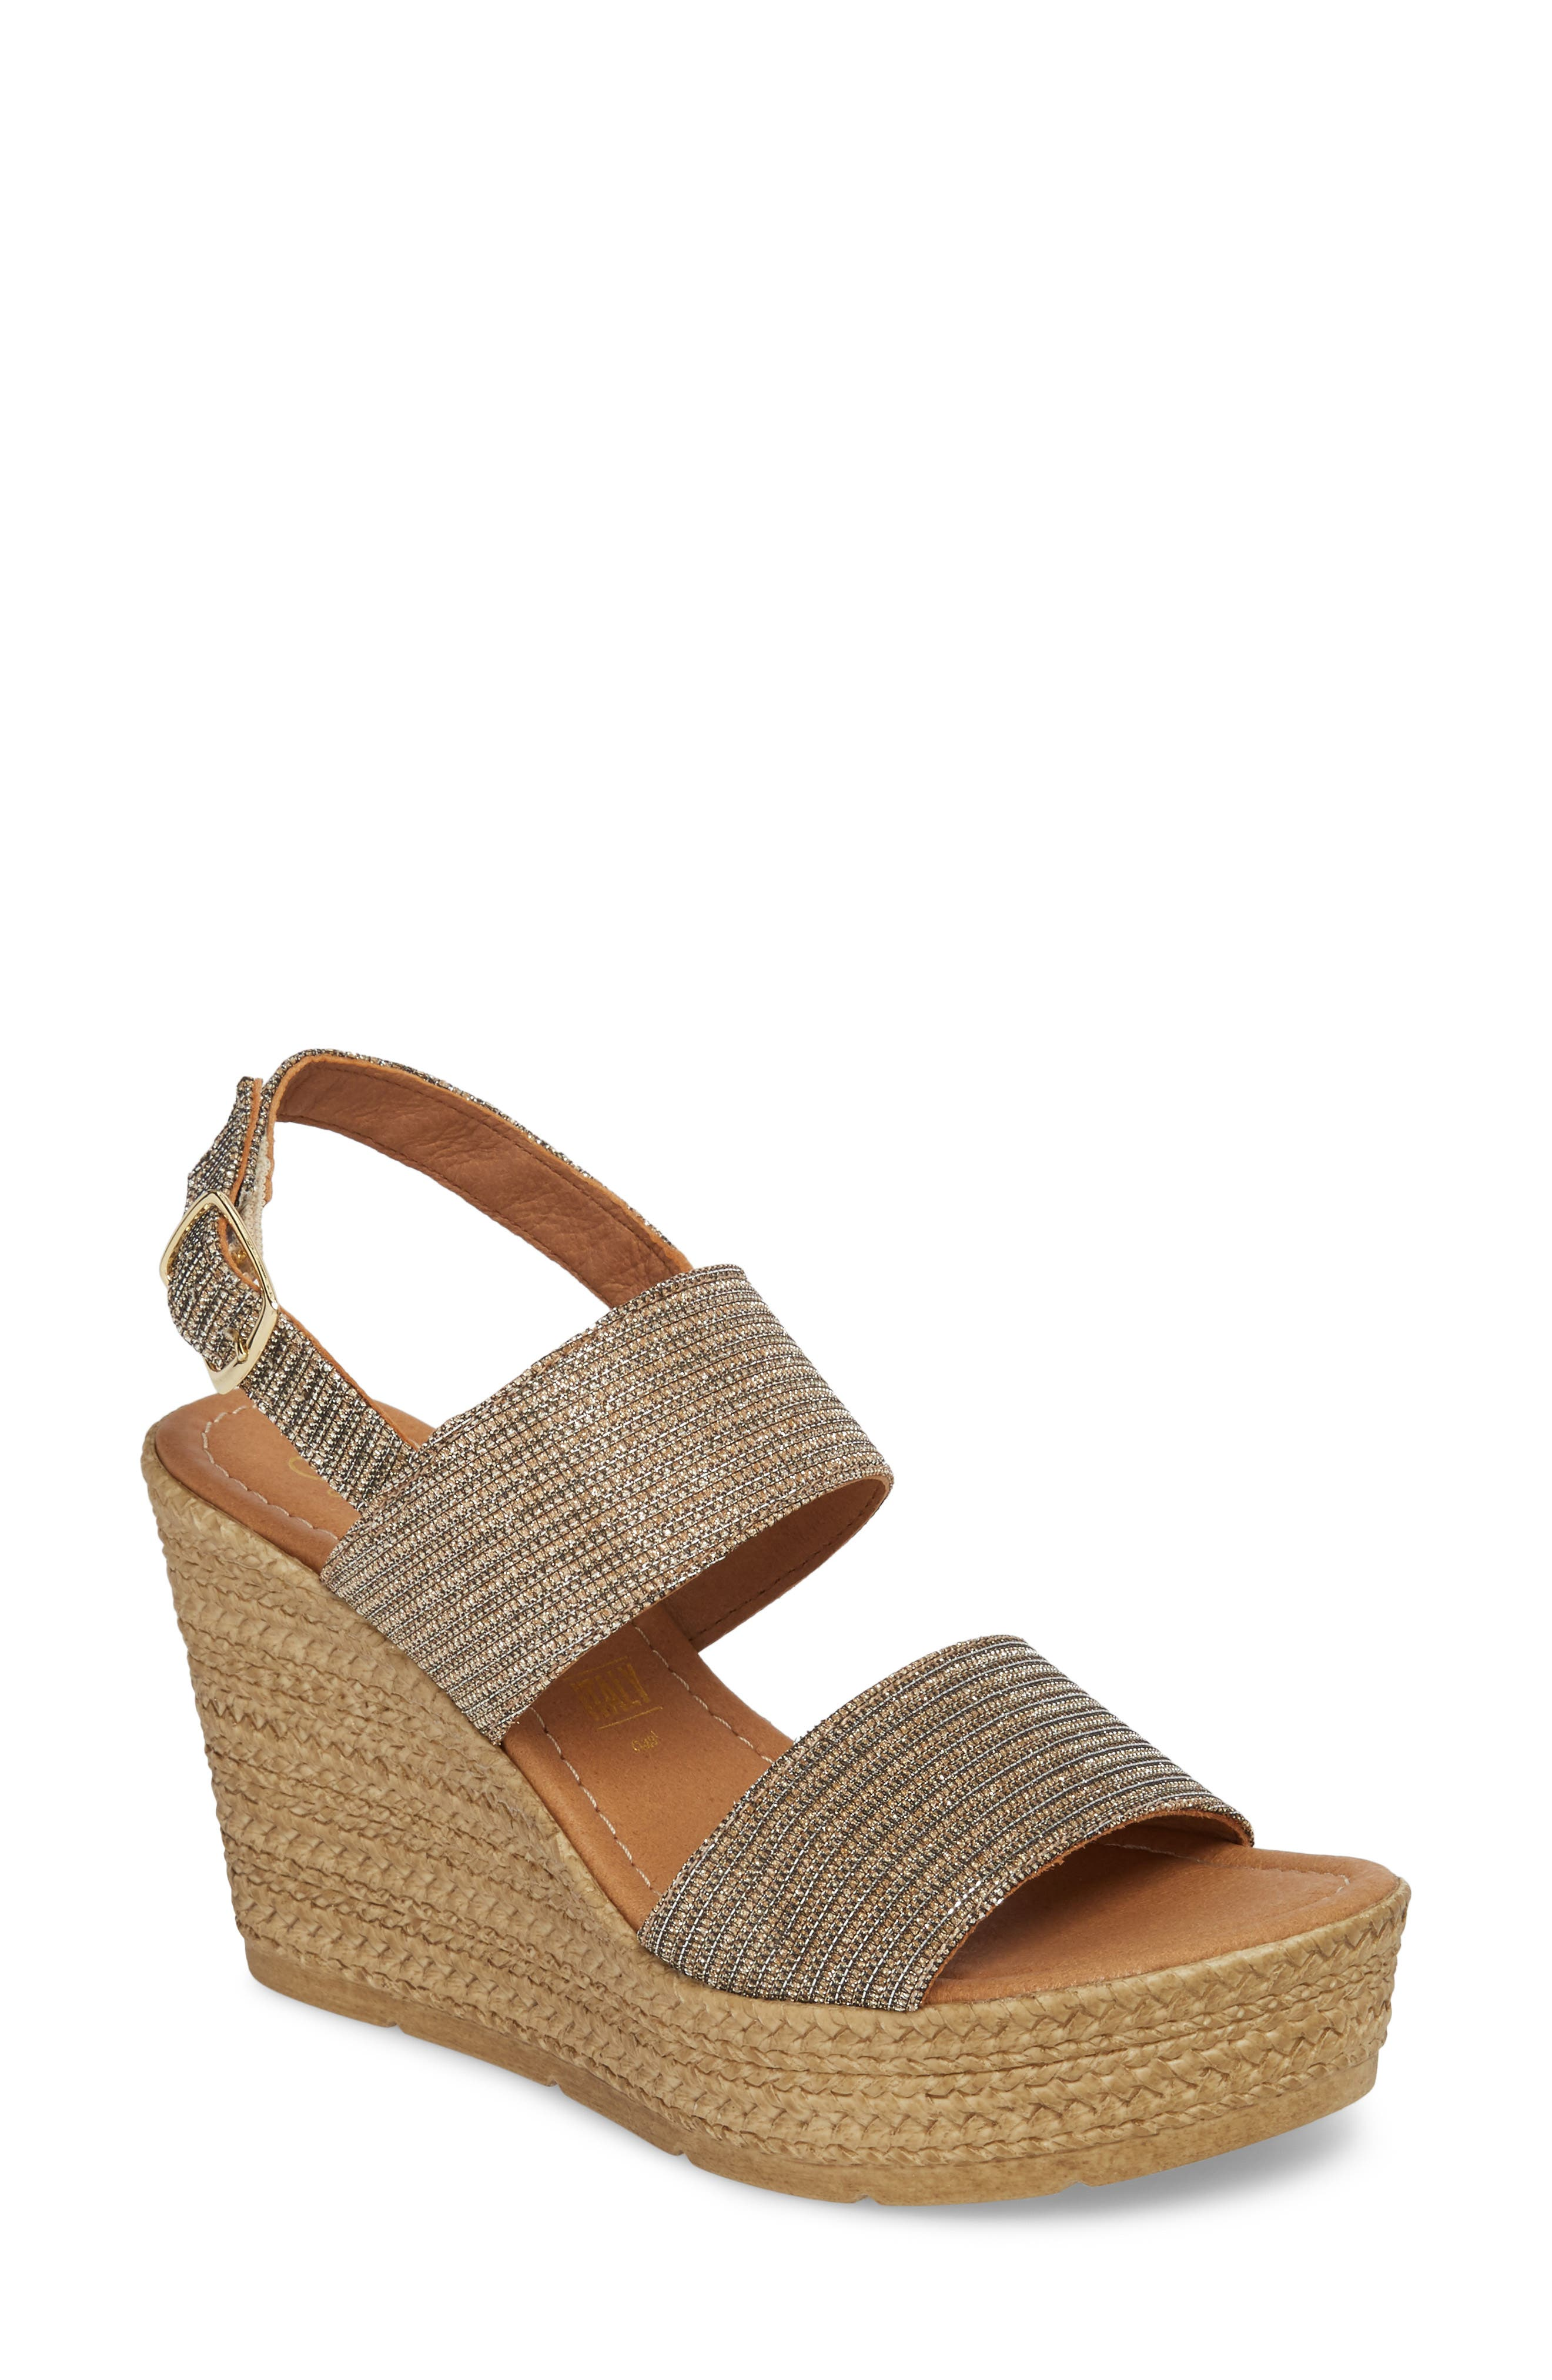 Downtime Wedge Sandal,                         Main,                         color, Bronze Metallic Fabric